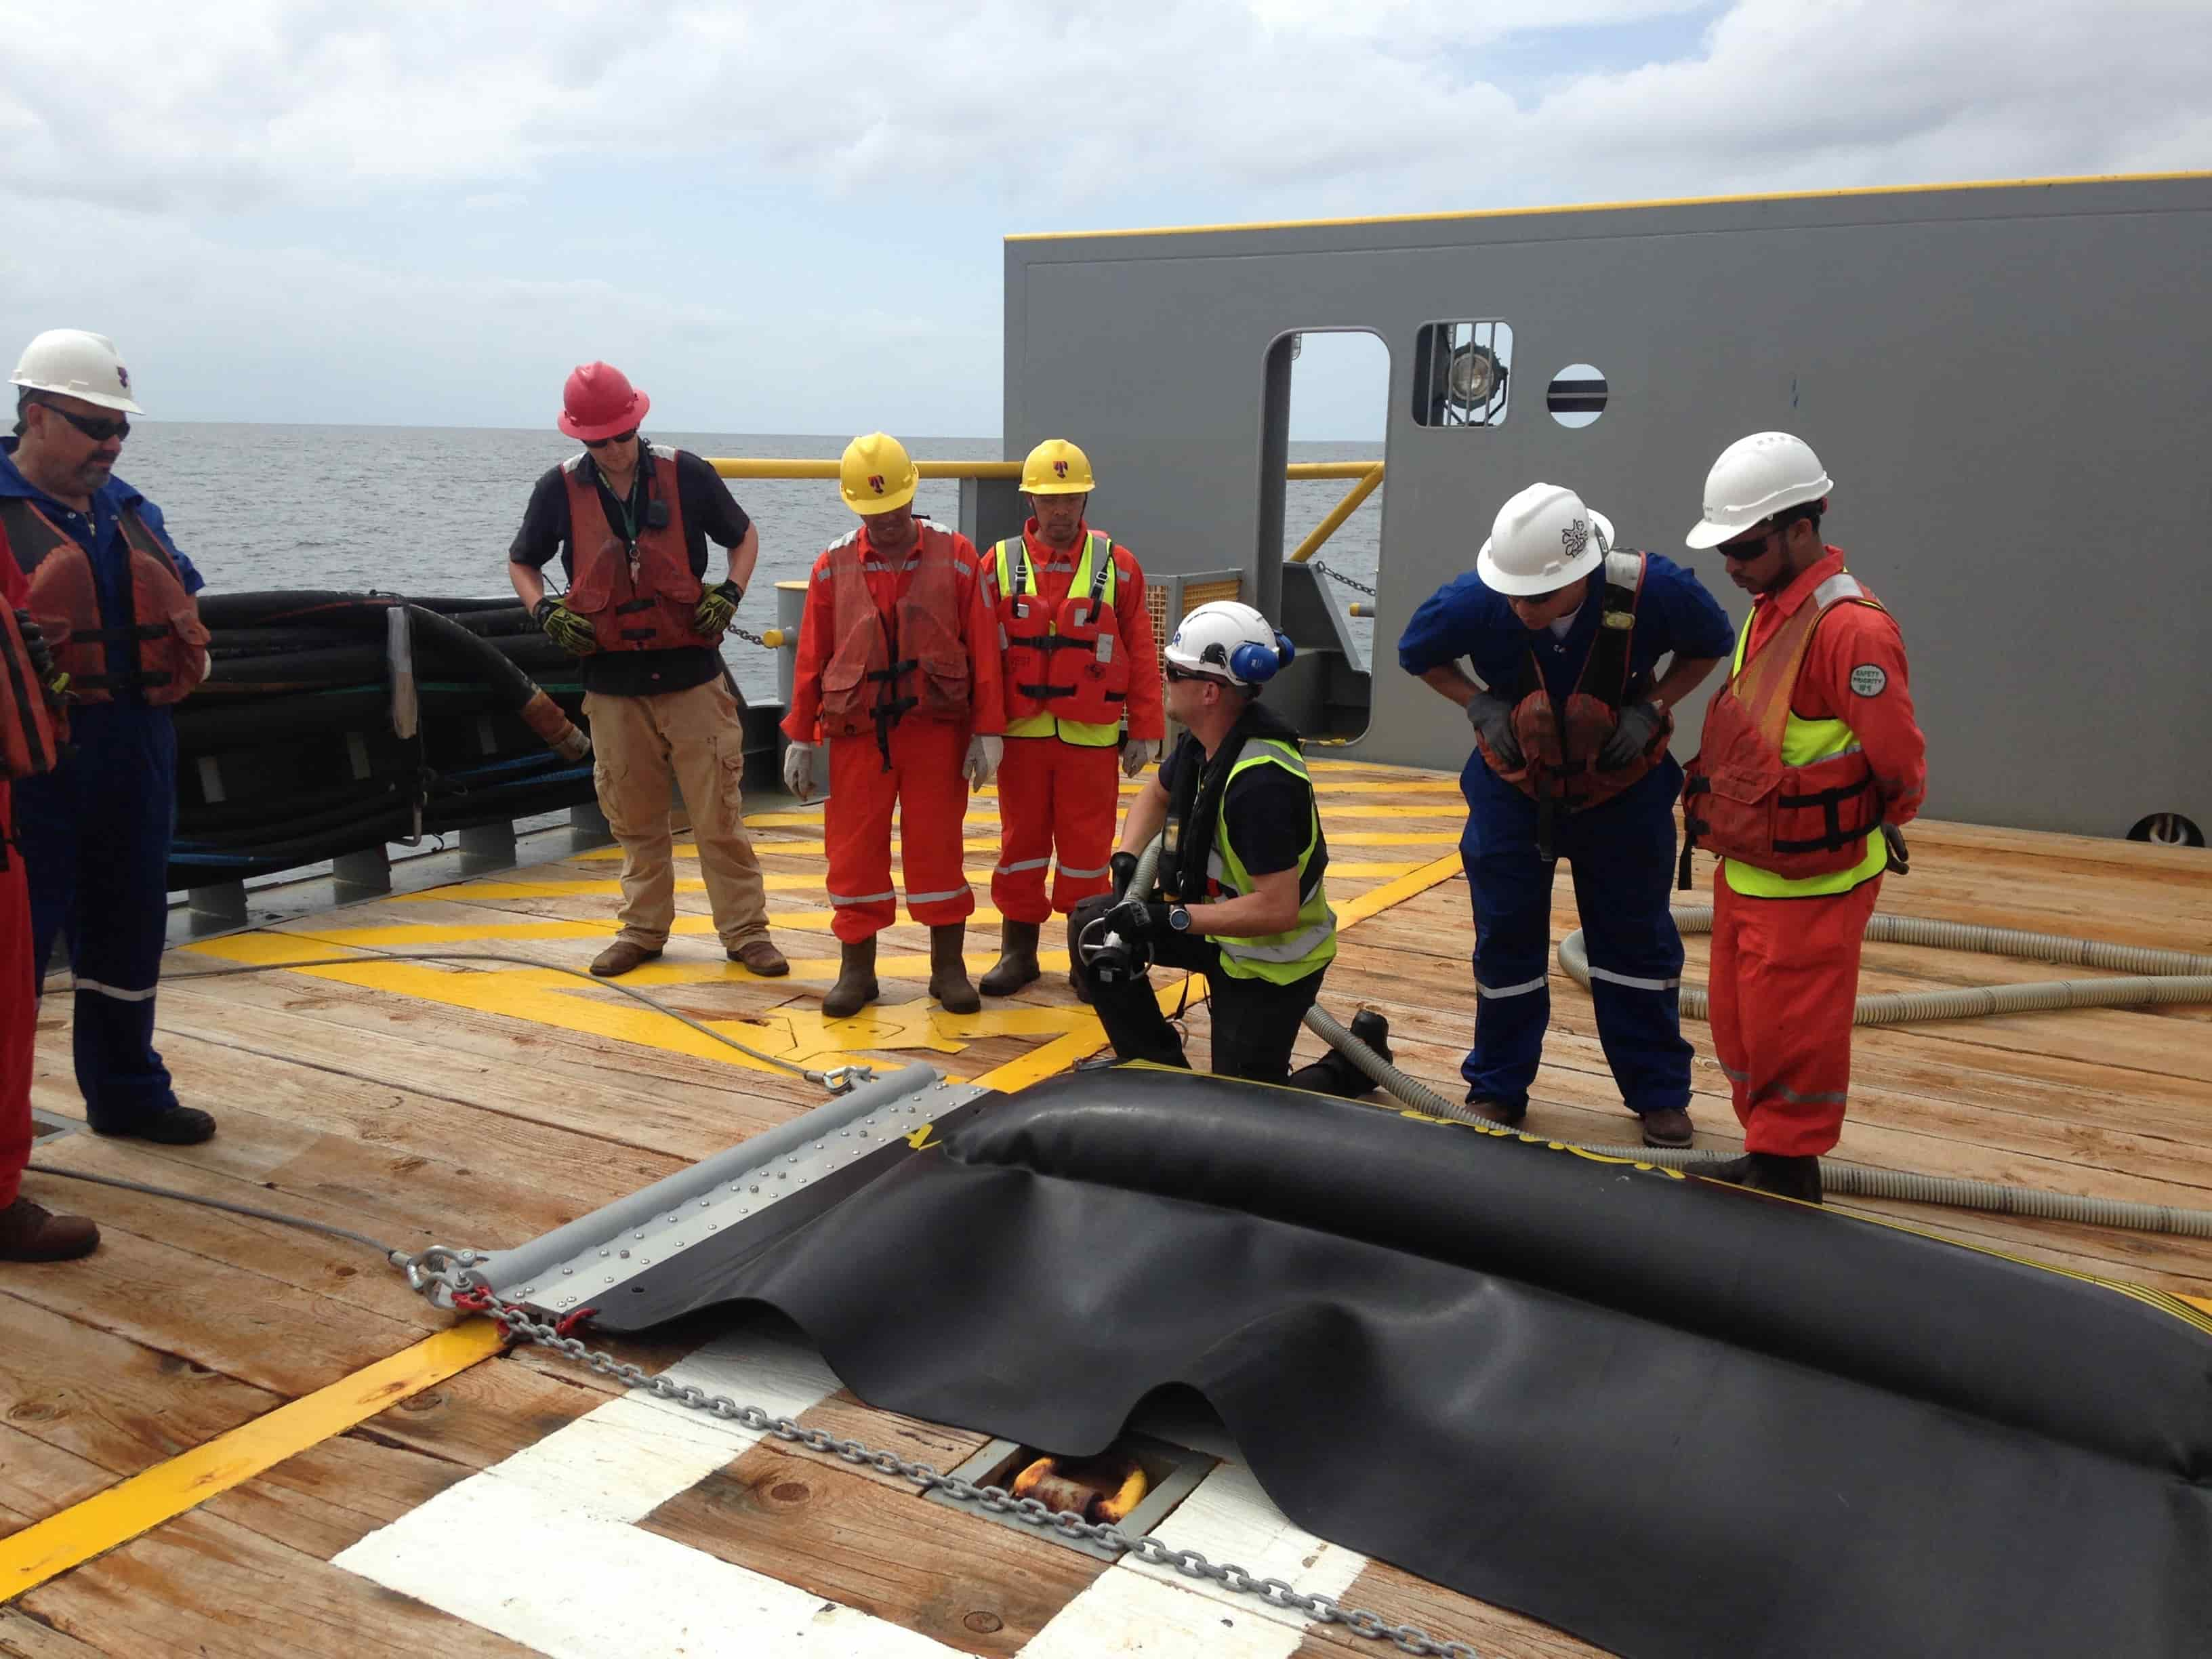 Equipment training is a natural part of the total services Lamor offers.